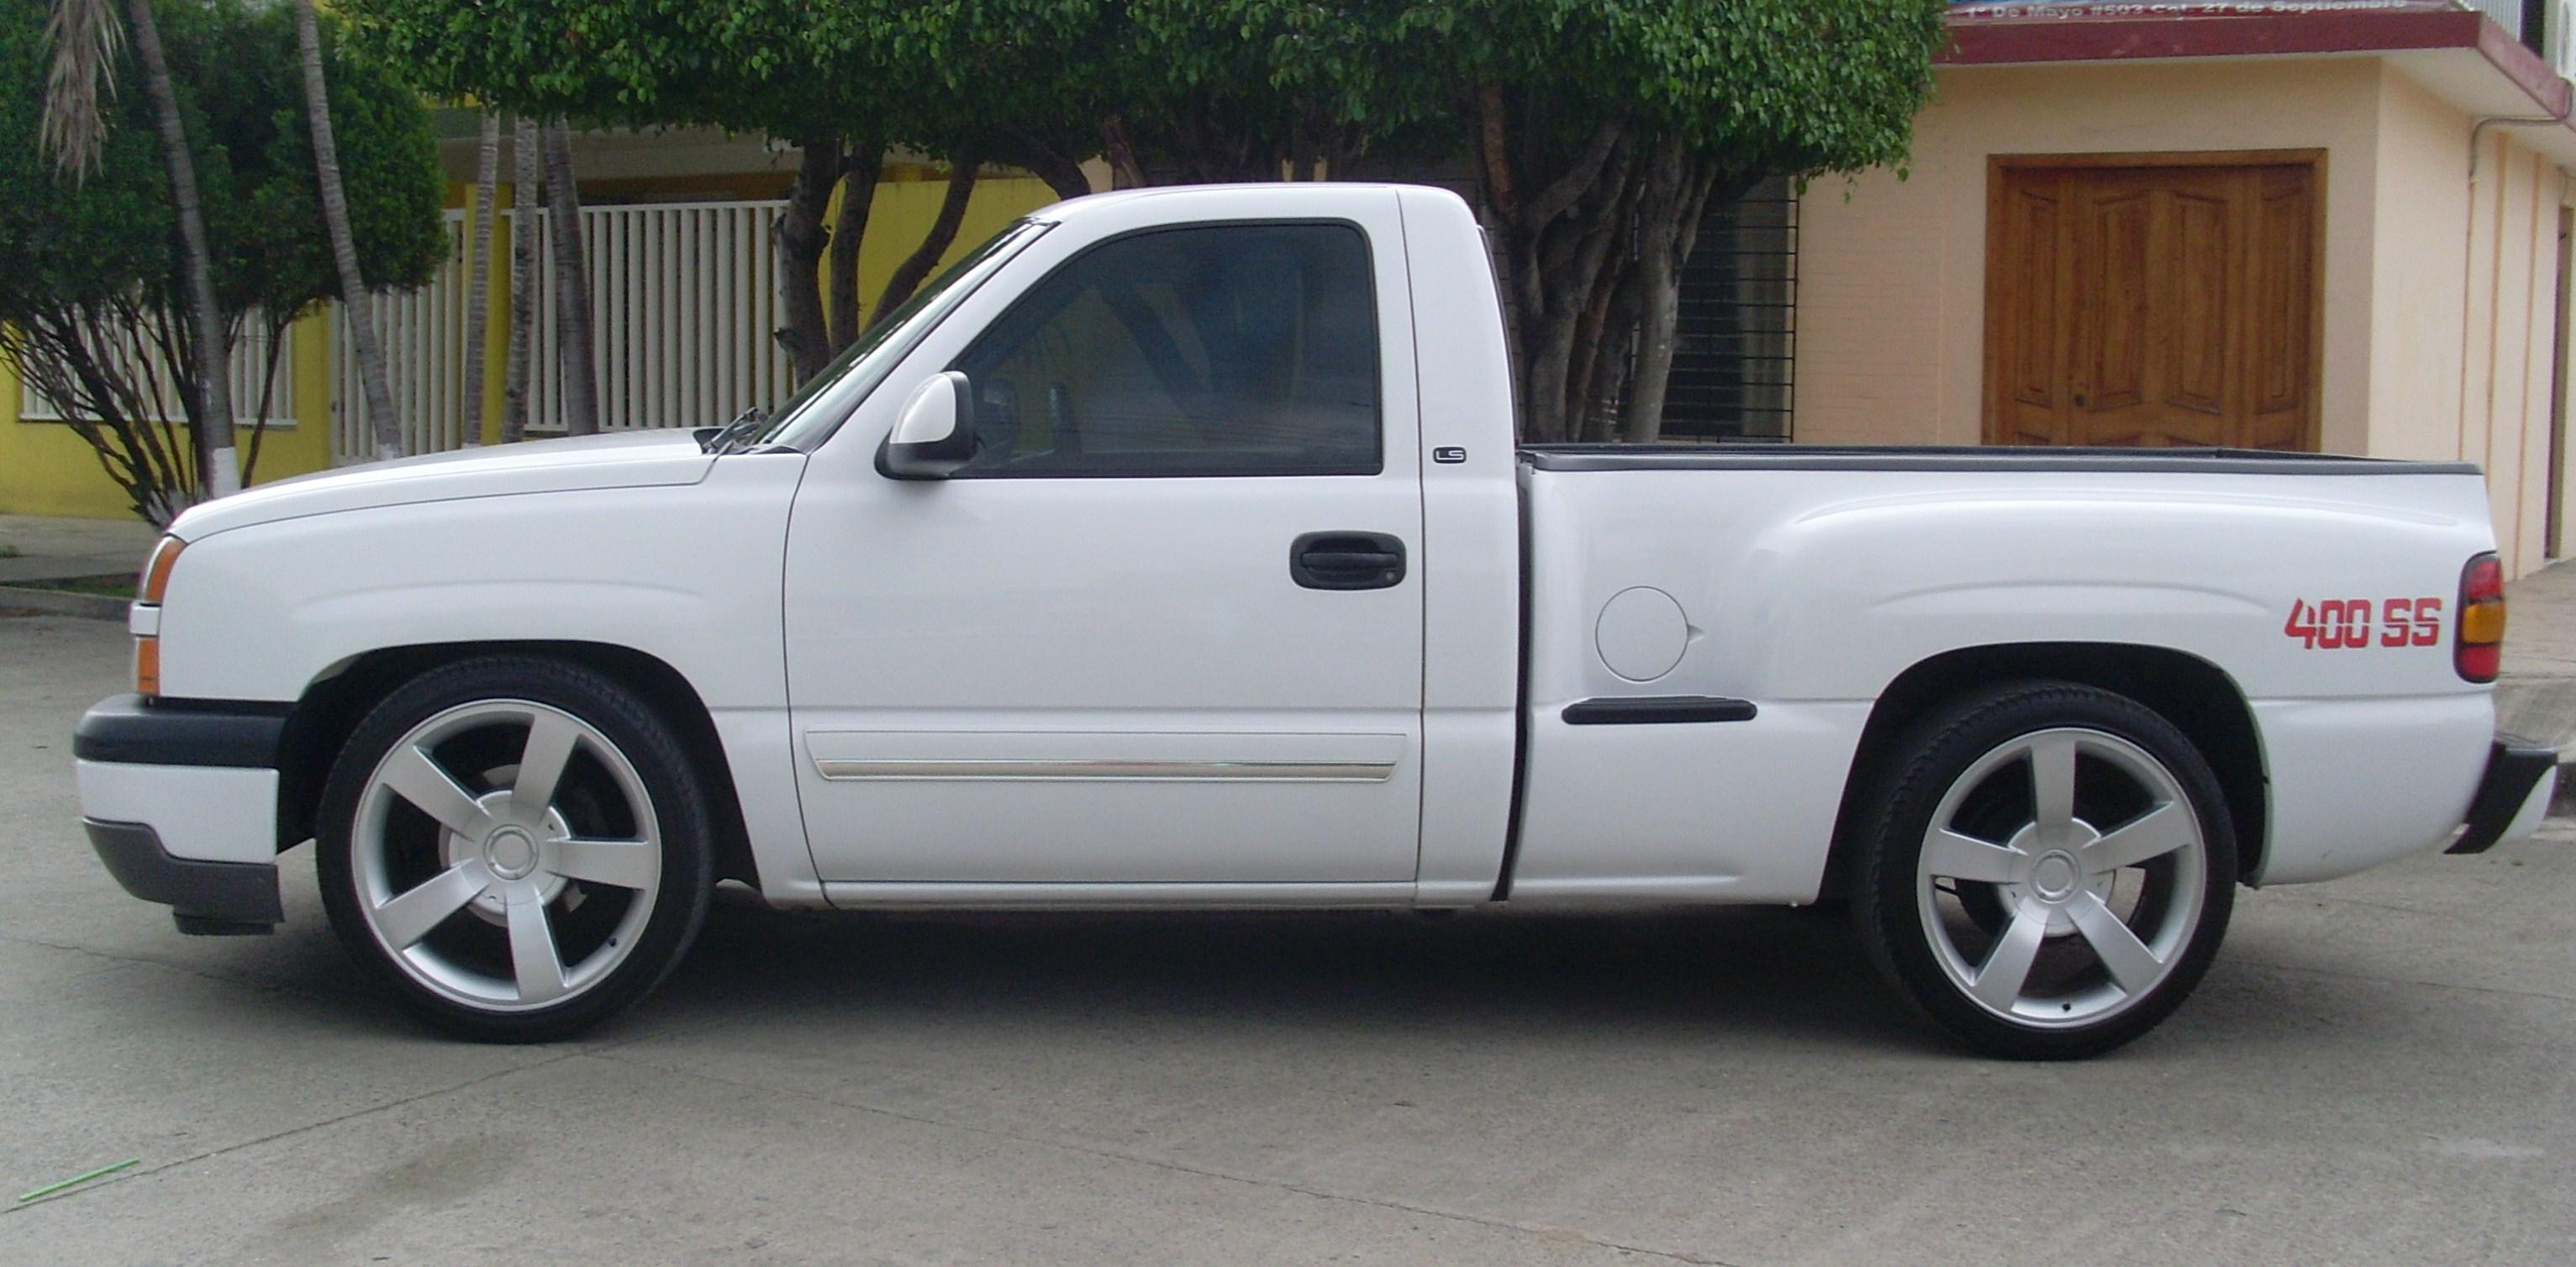 400ssgarces 2005 Chevrolet Silverado 1500 Regular Cab